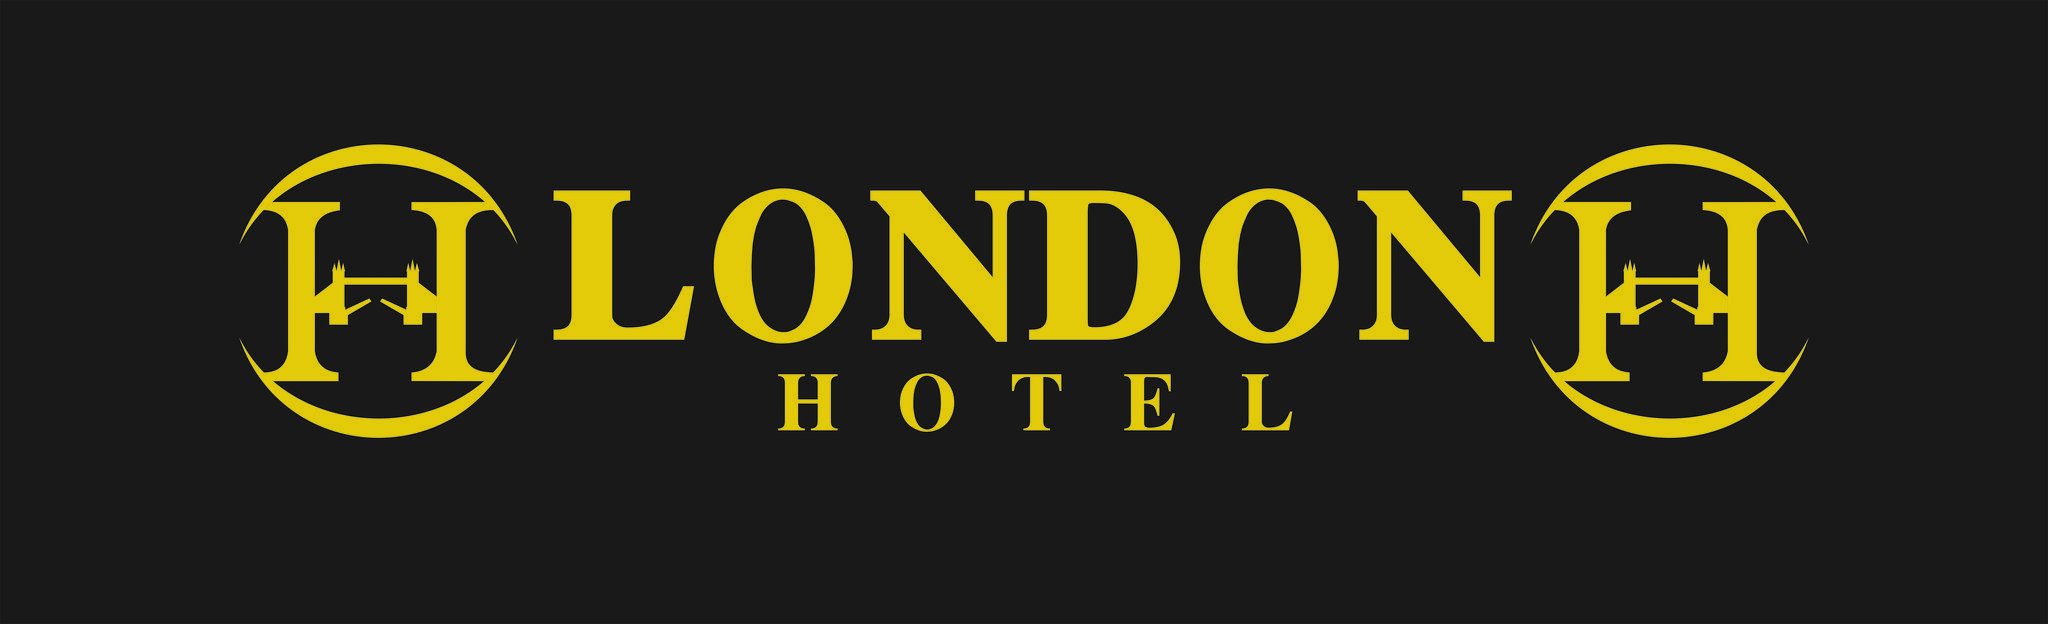 London Hanoi Hotel